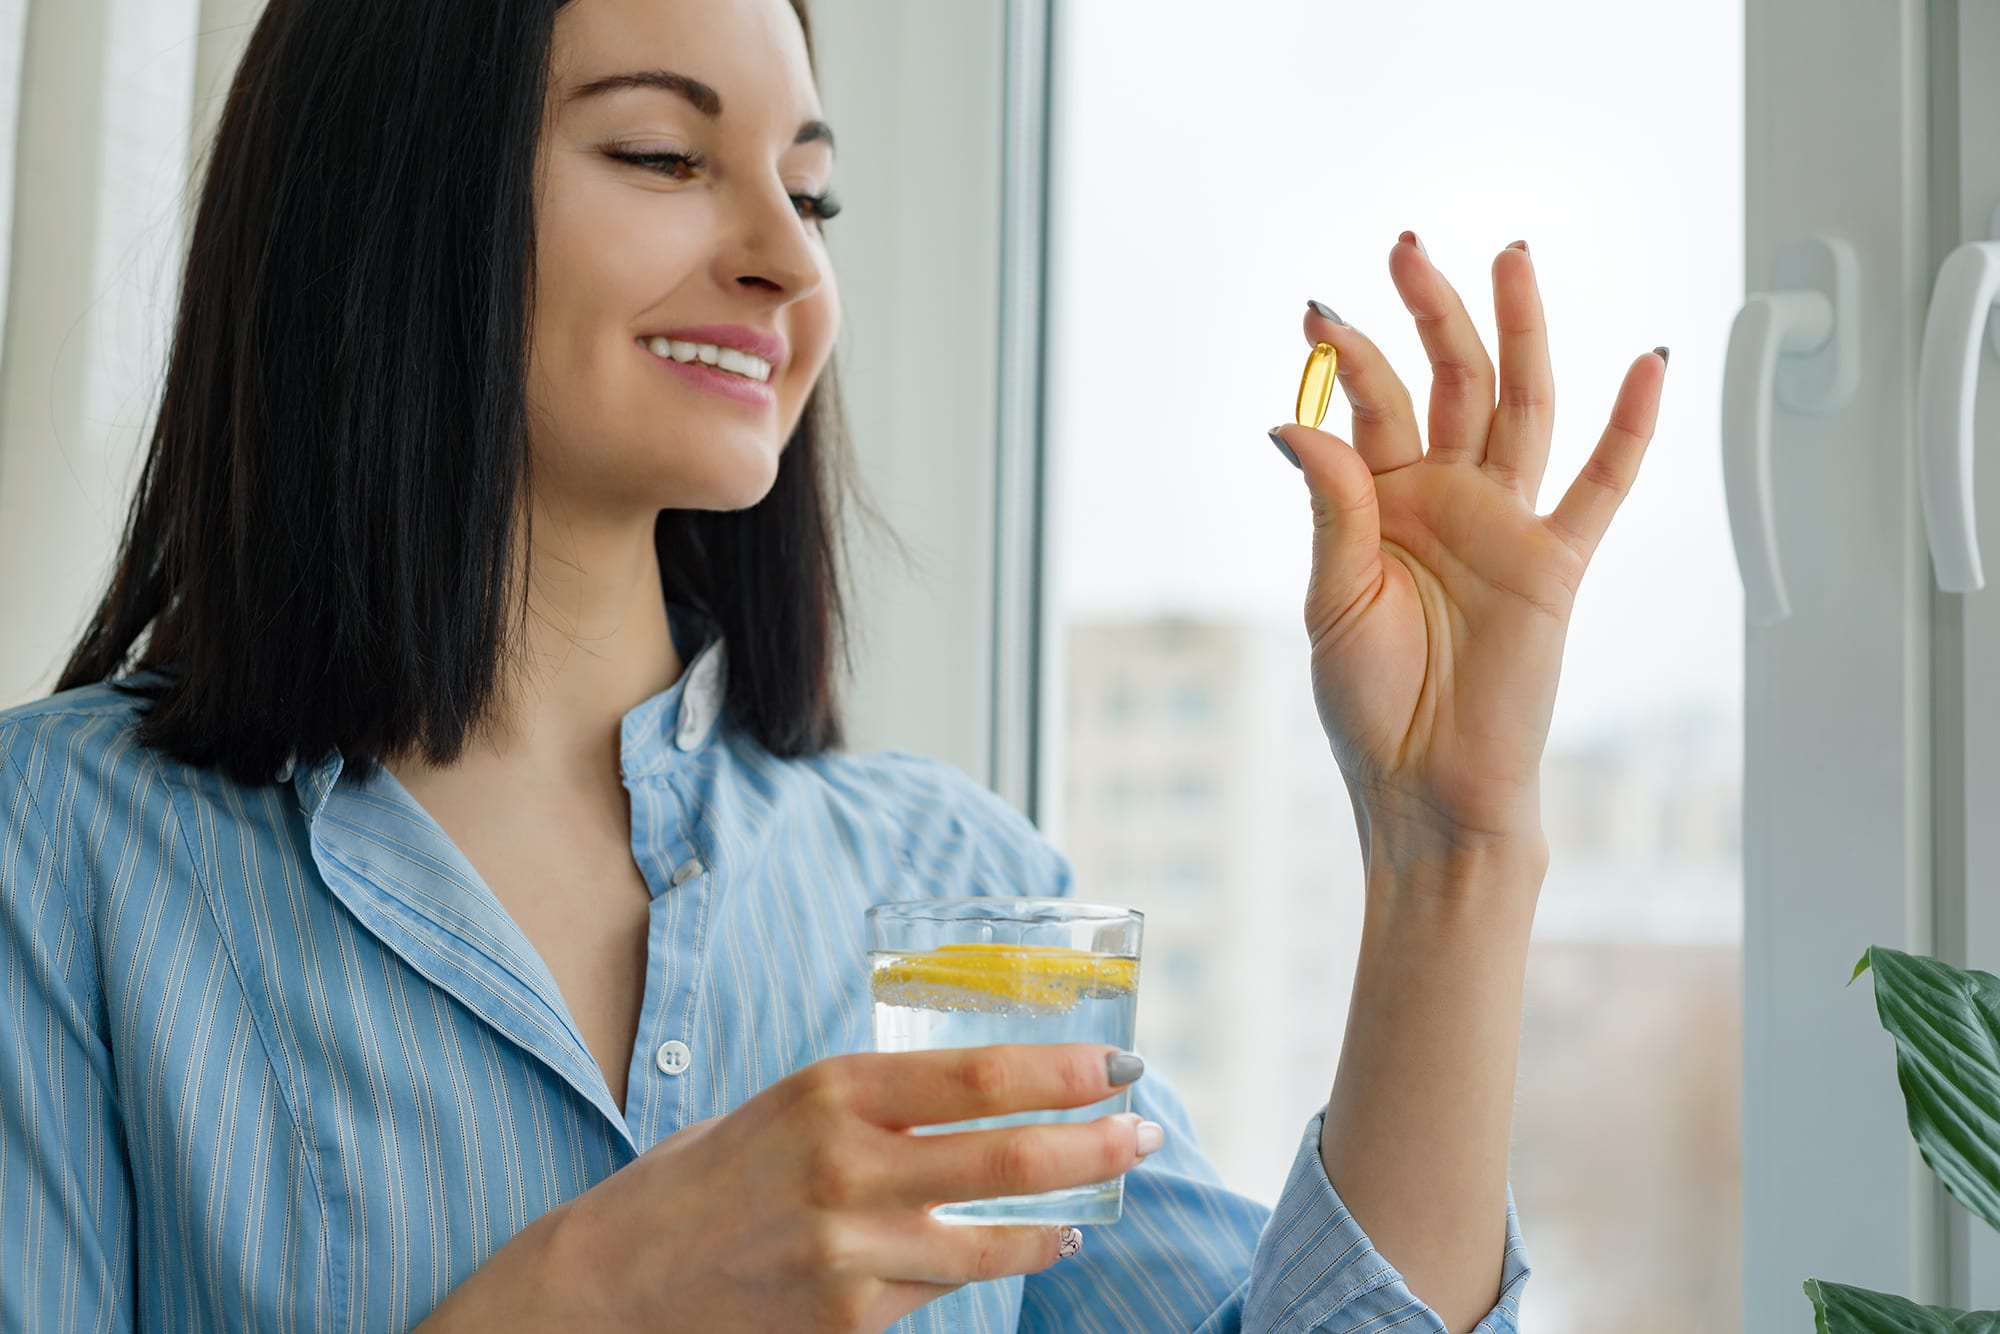 Woman taking nutritional supplement